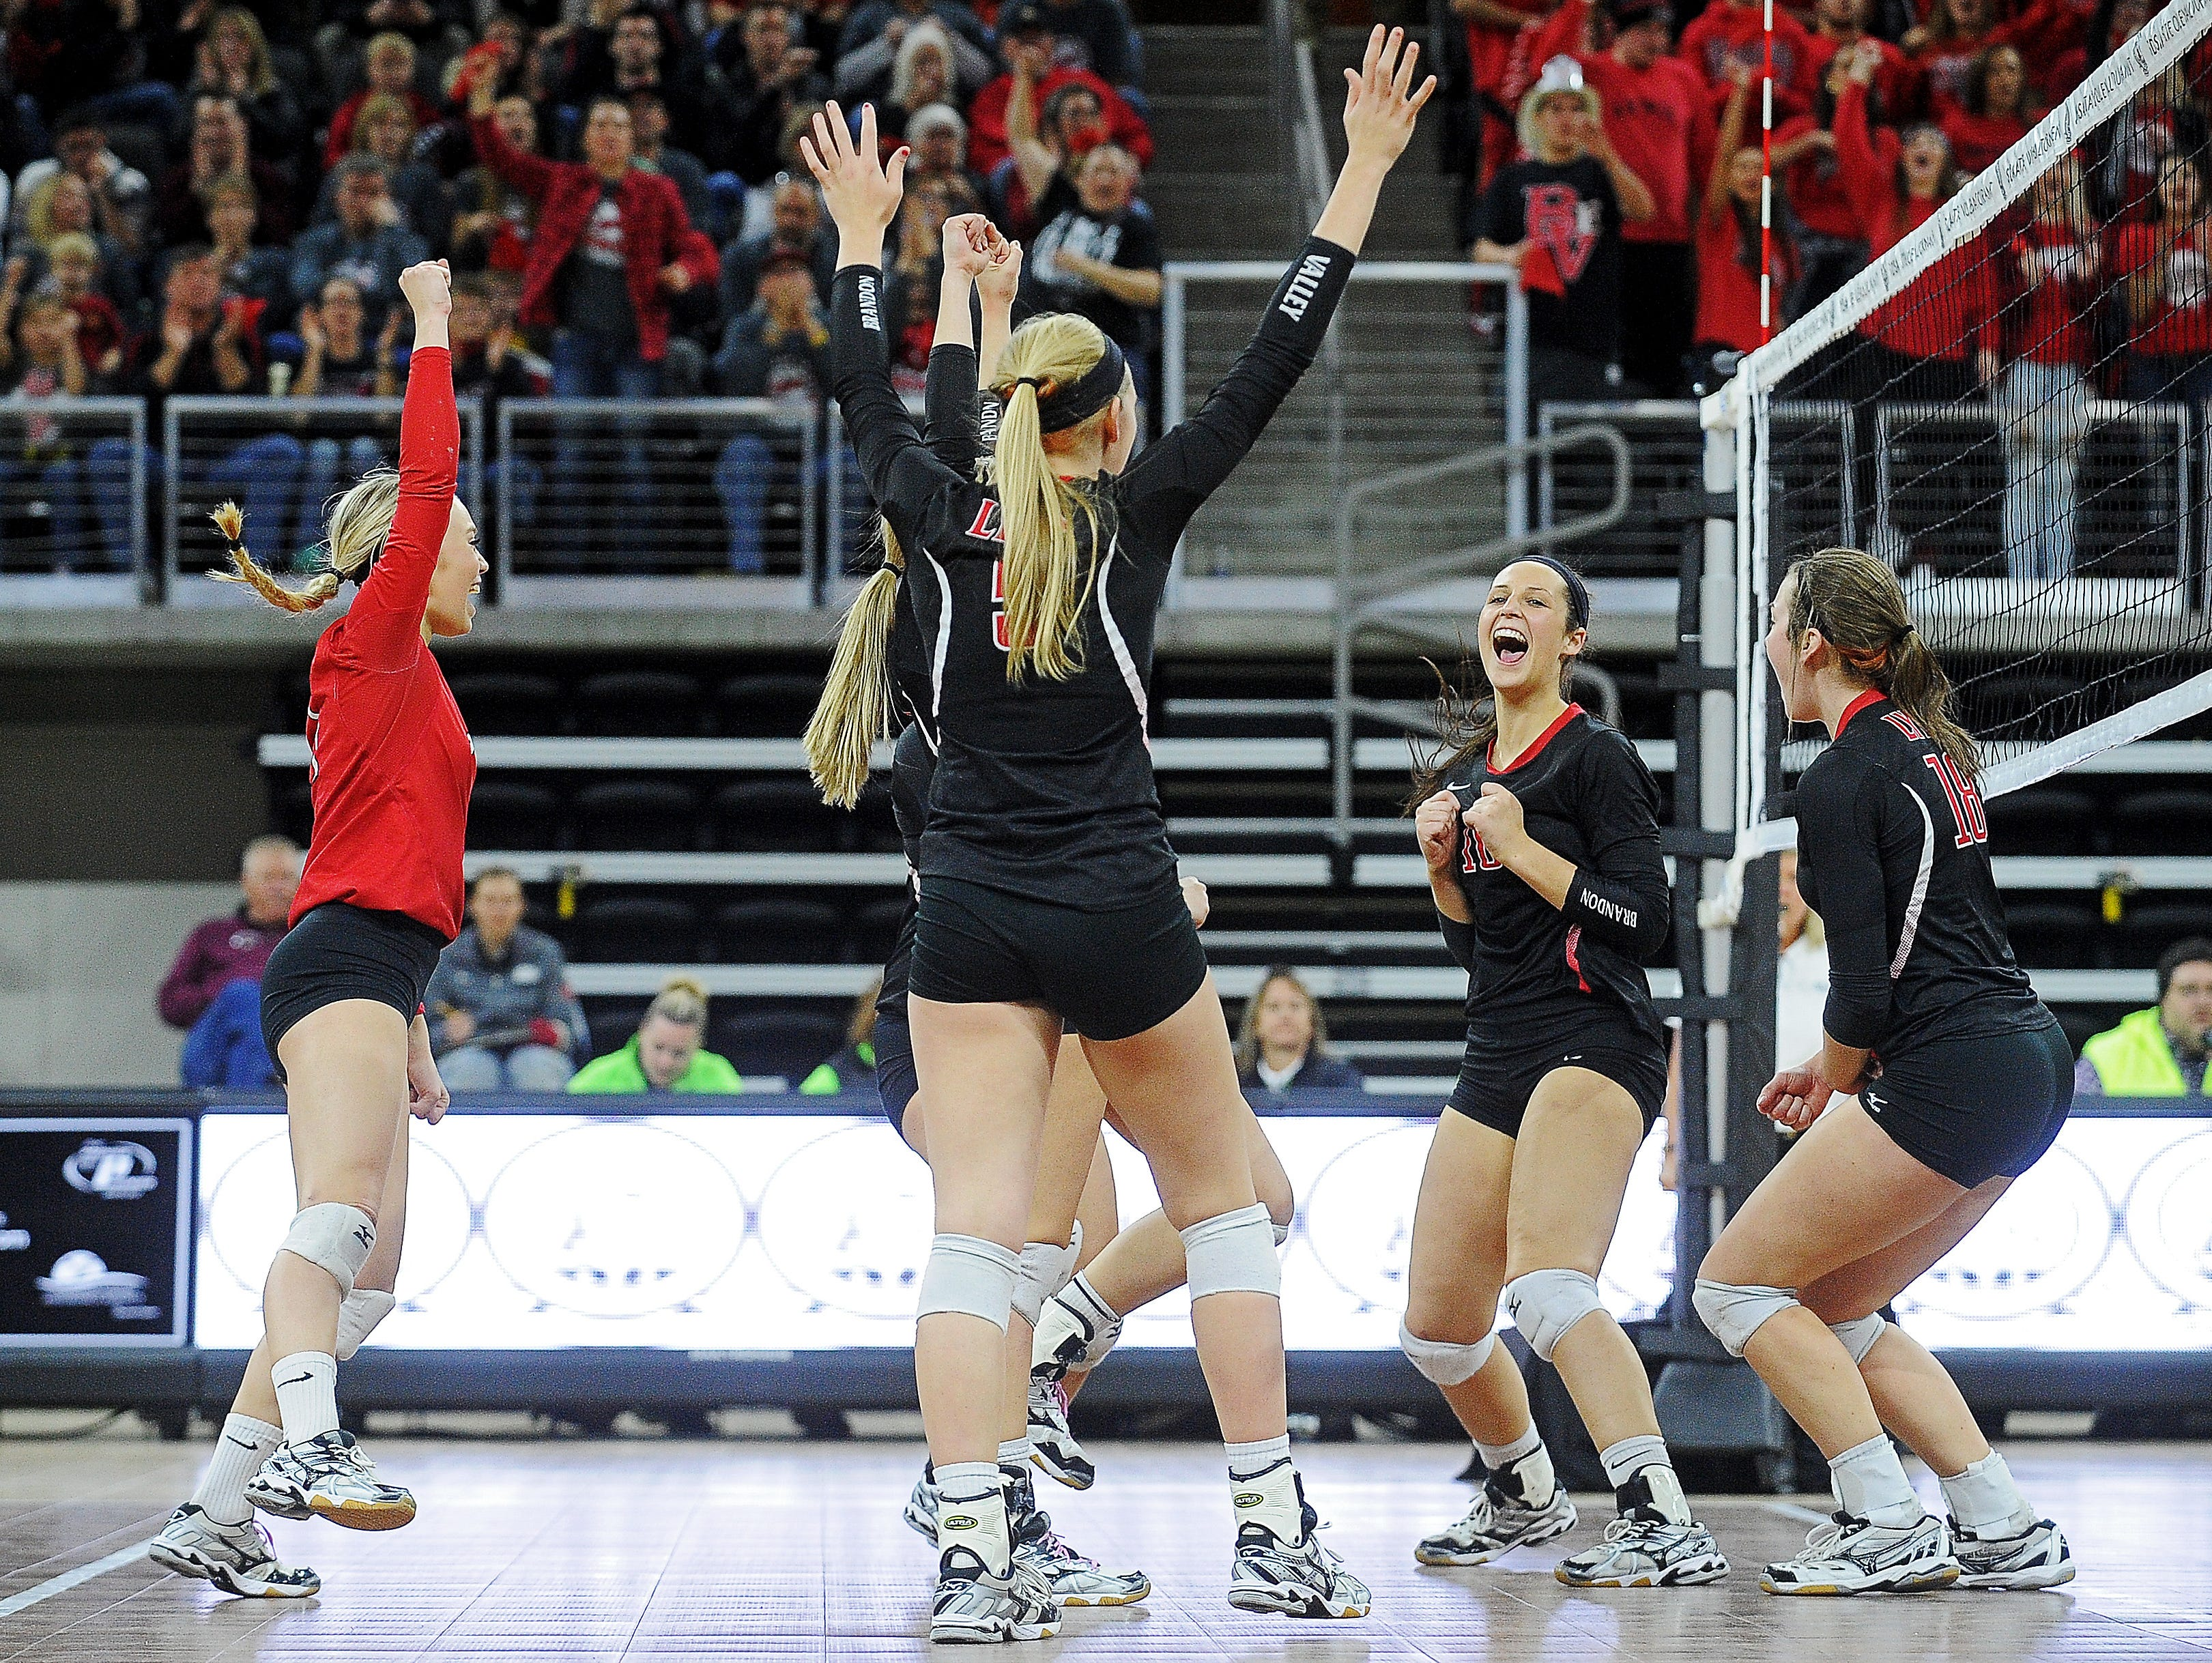 Brandon Valley players react after scoring during the South Dakota State High School Class AA championship volleyball match against Aberdeen Central Saturday, Nov. 21, 2015, at the Denny Sanford Premier Center in Sioux Falls.